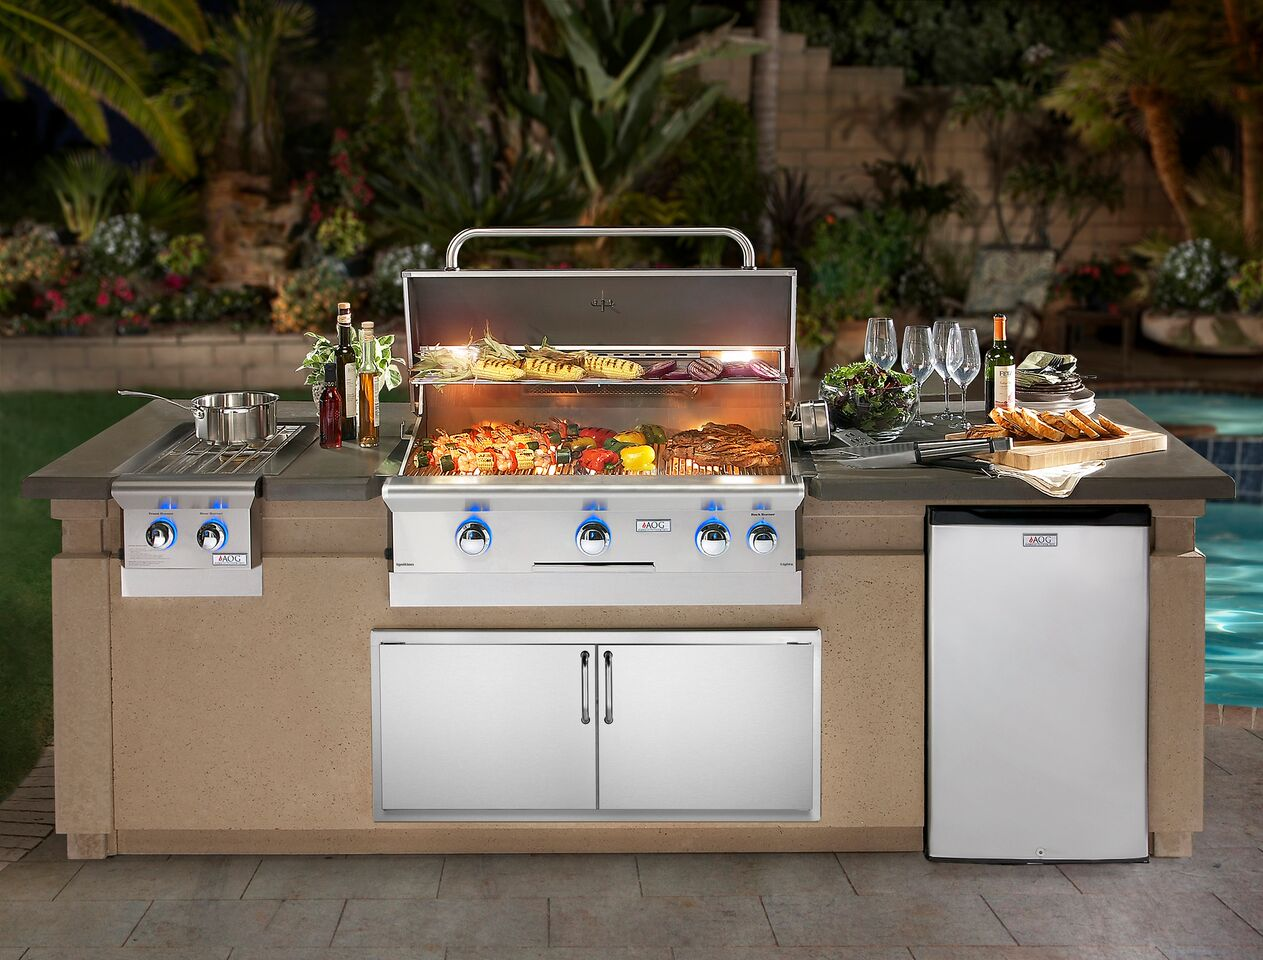 aog-dc790-cbr-108sm-island-system-with-l-series-lifestyle-2018-preview.jpg